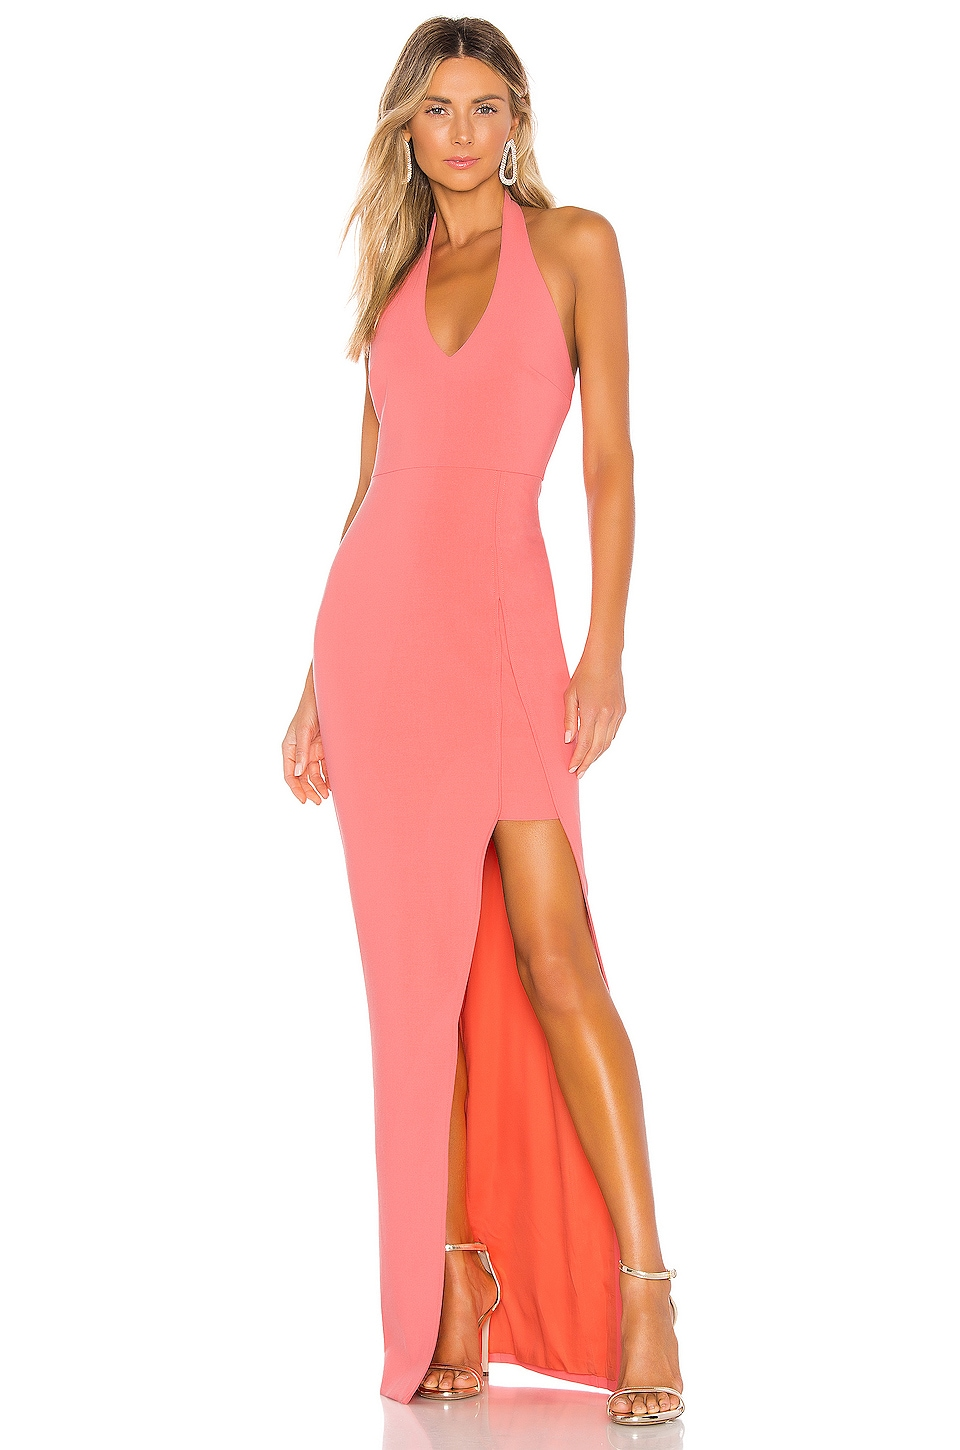 LIKELY Rudina Gown in Coral